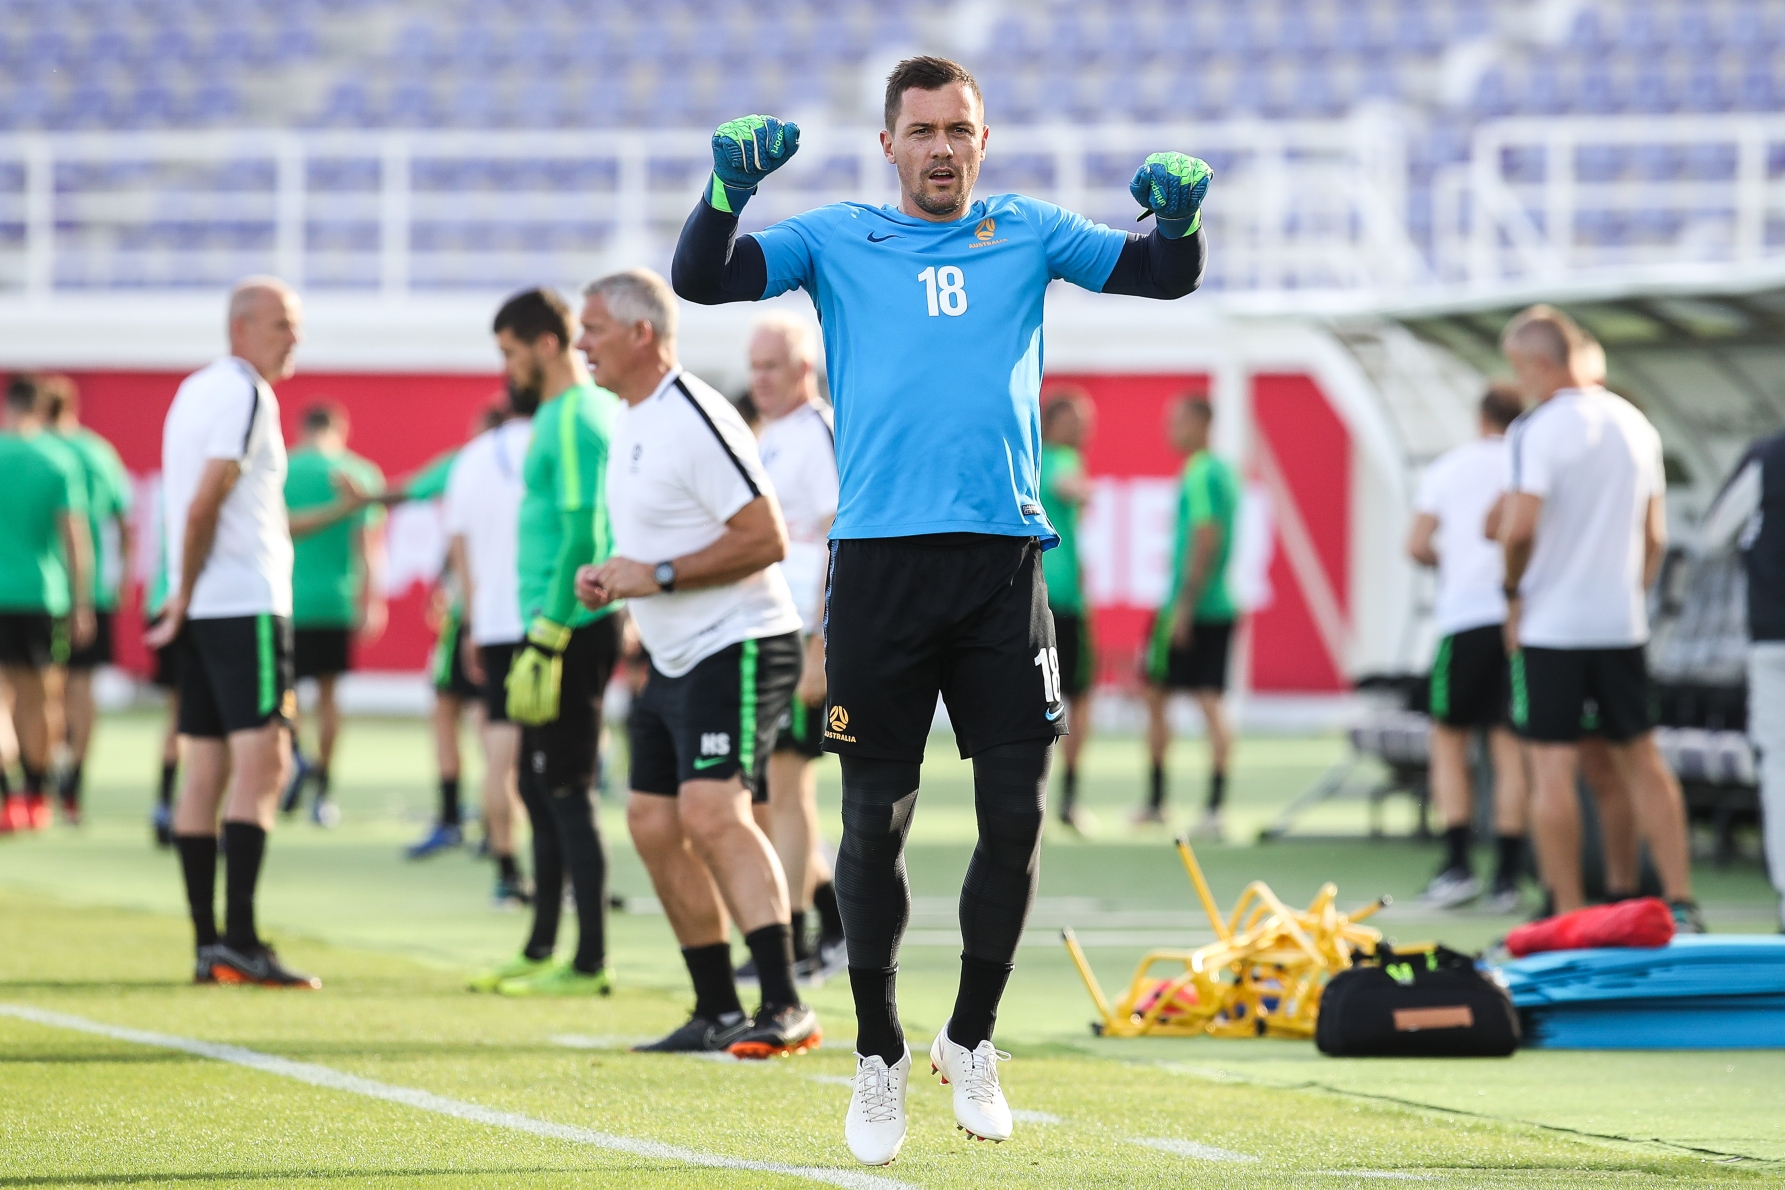 Vukovic nears the end of 'a long road' to recovery from ruptured Achilles